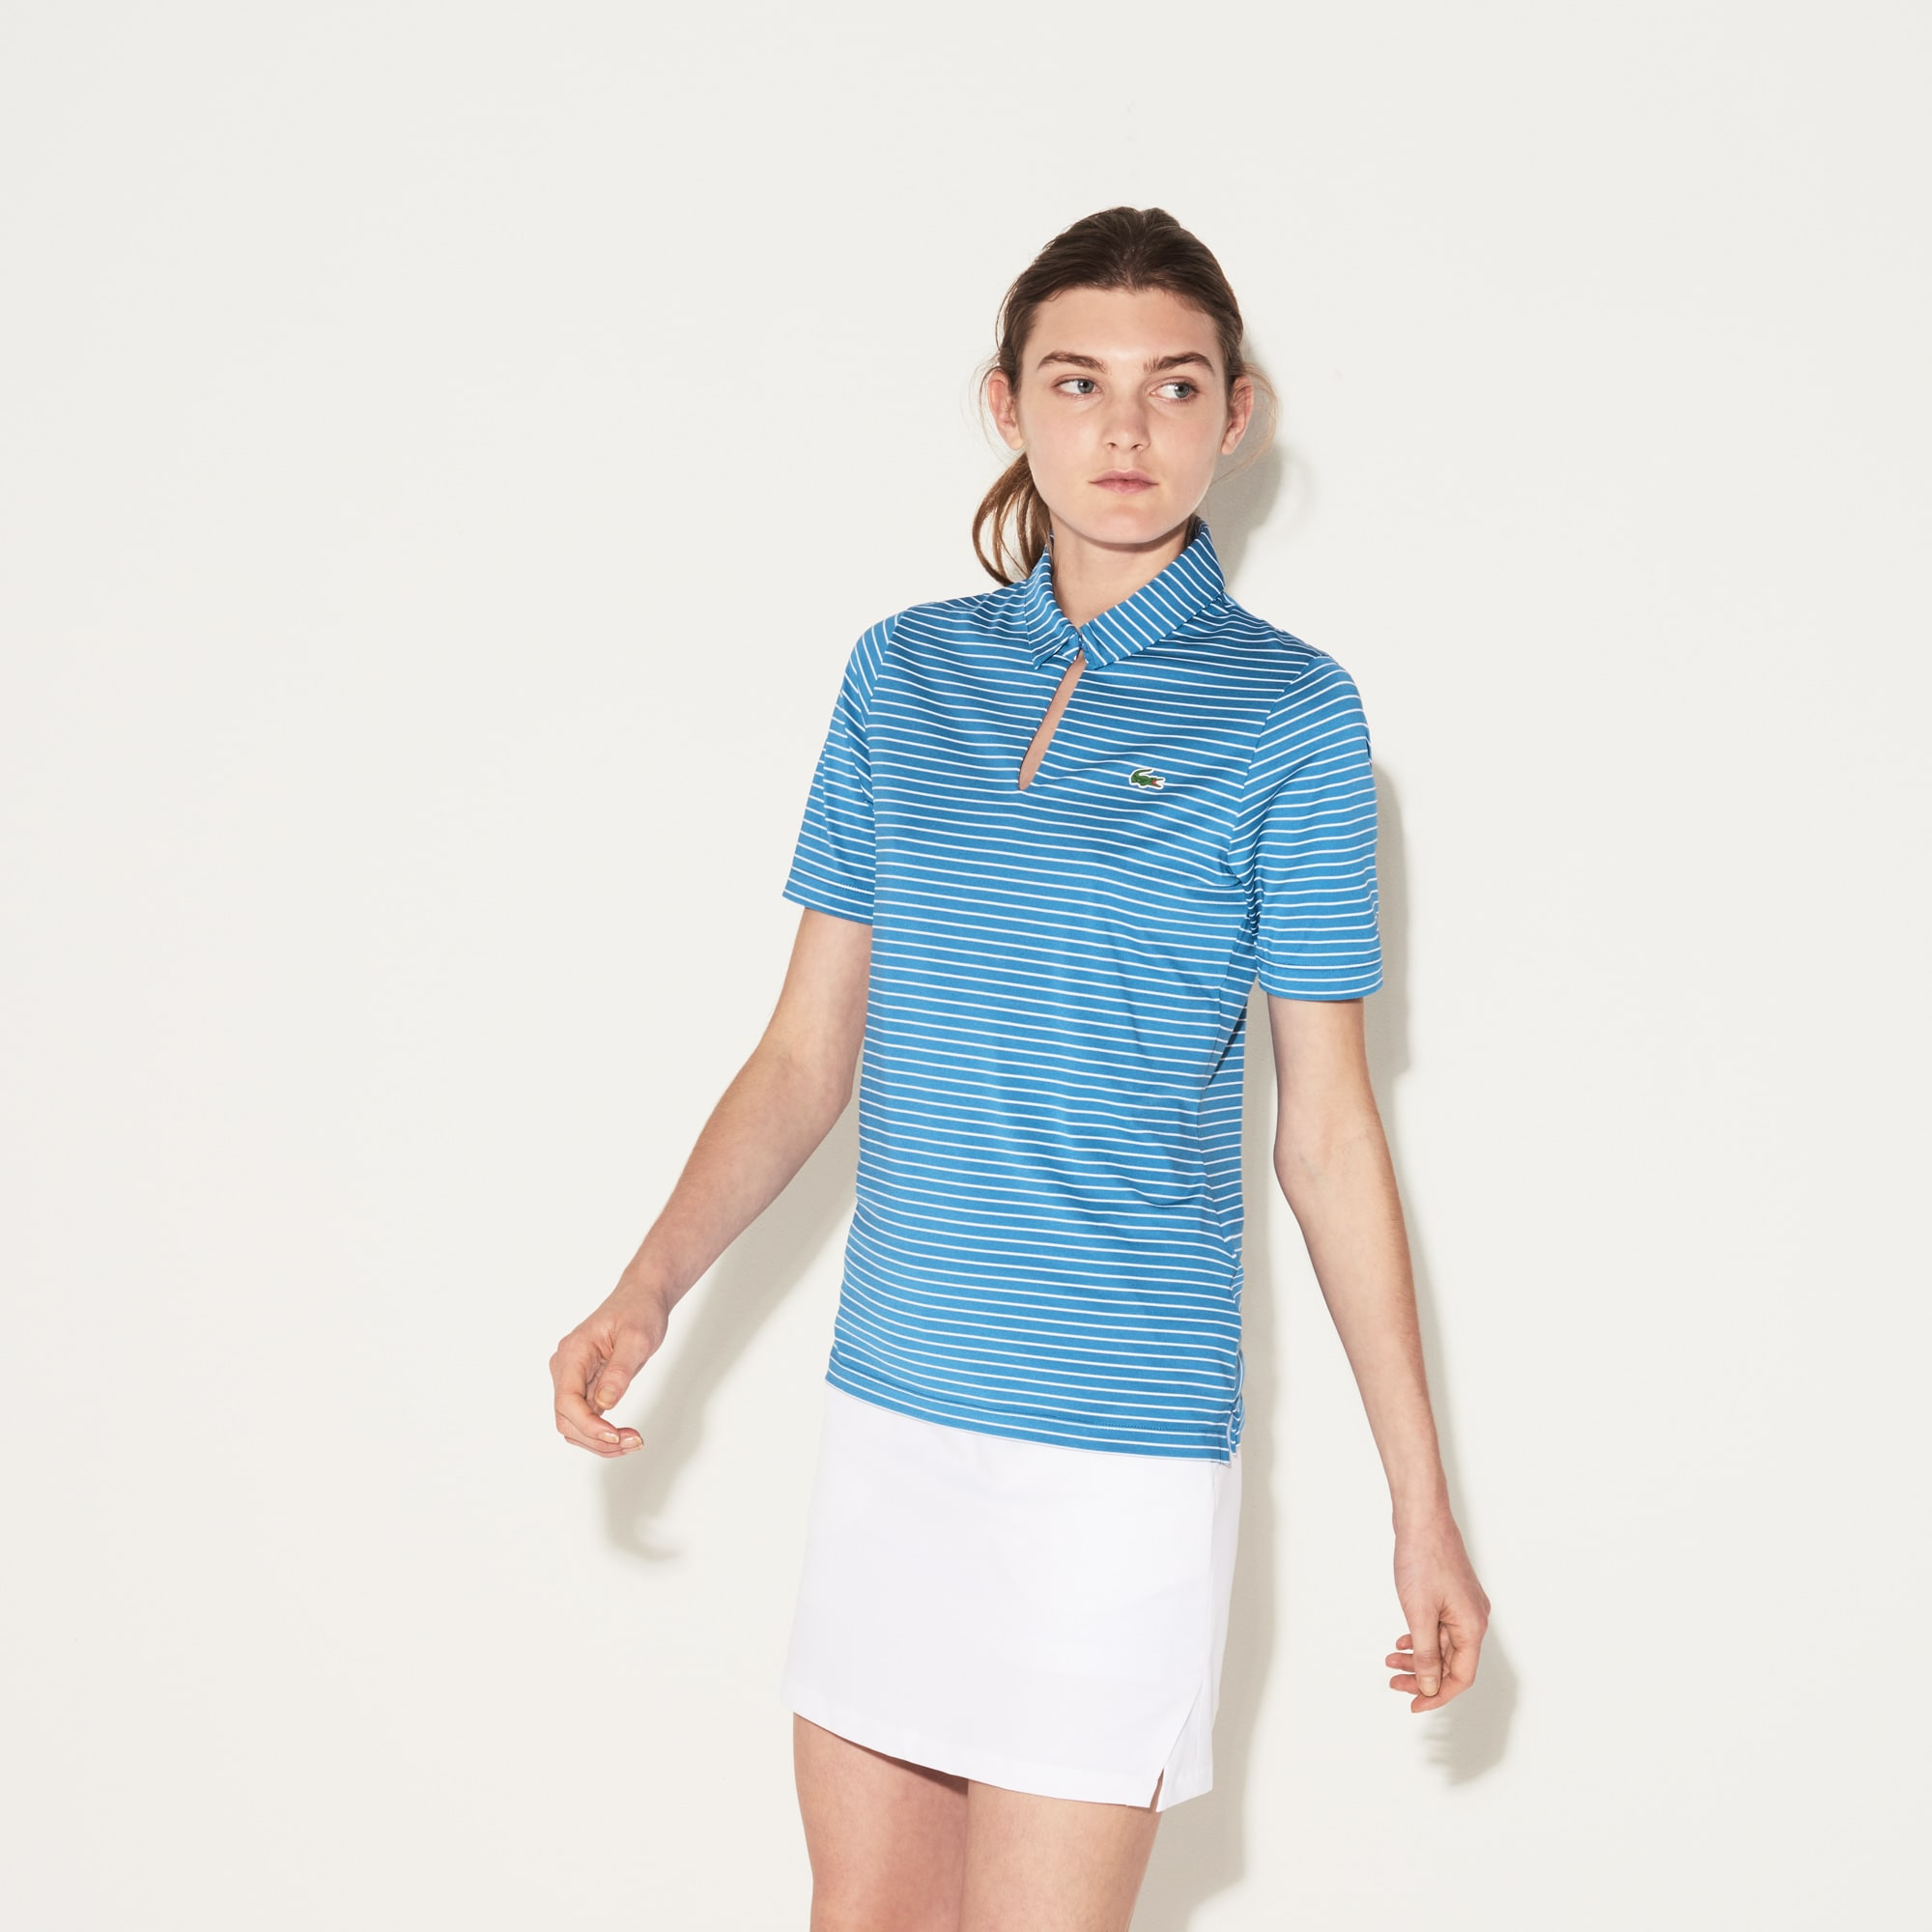 Women's SPORT Teardrop Neck Striped Jersey Golf Polo